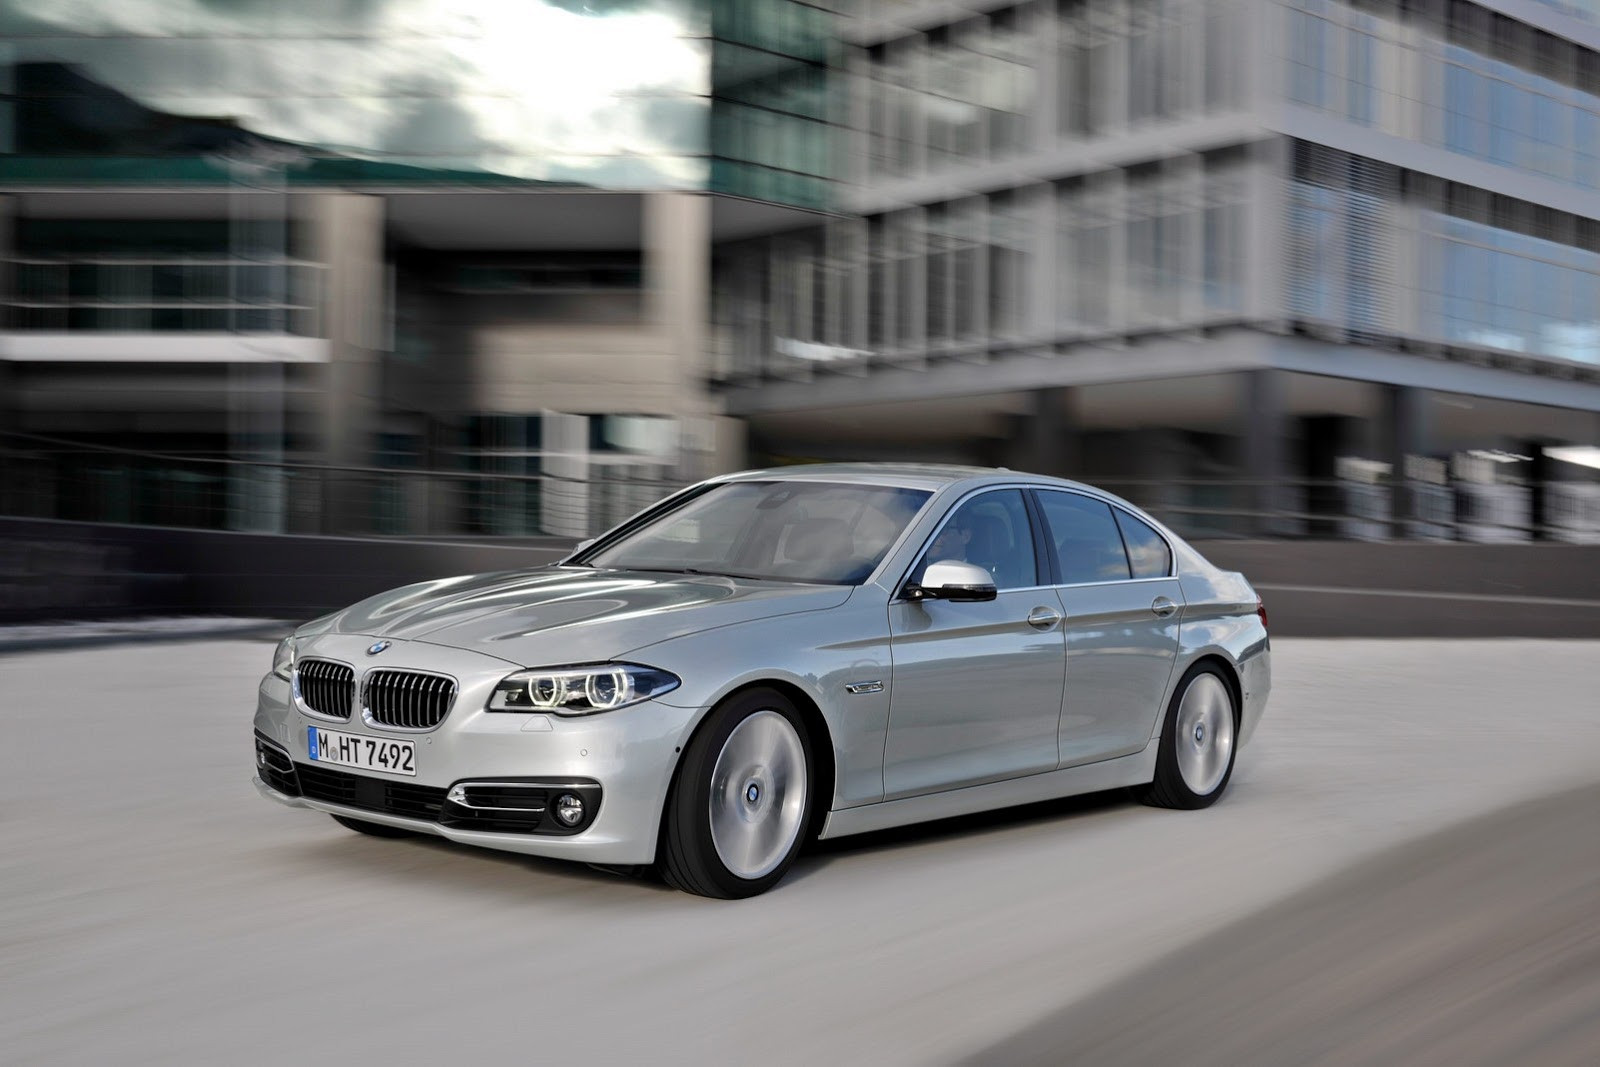 bmw 5 series images #11